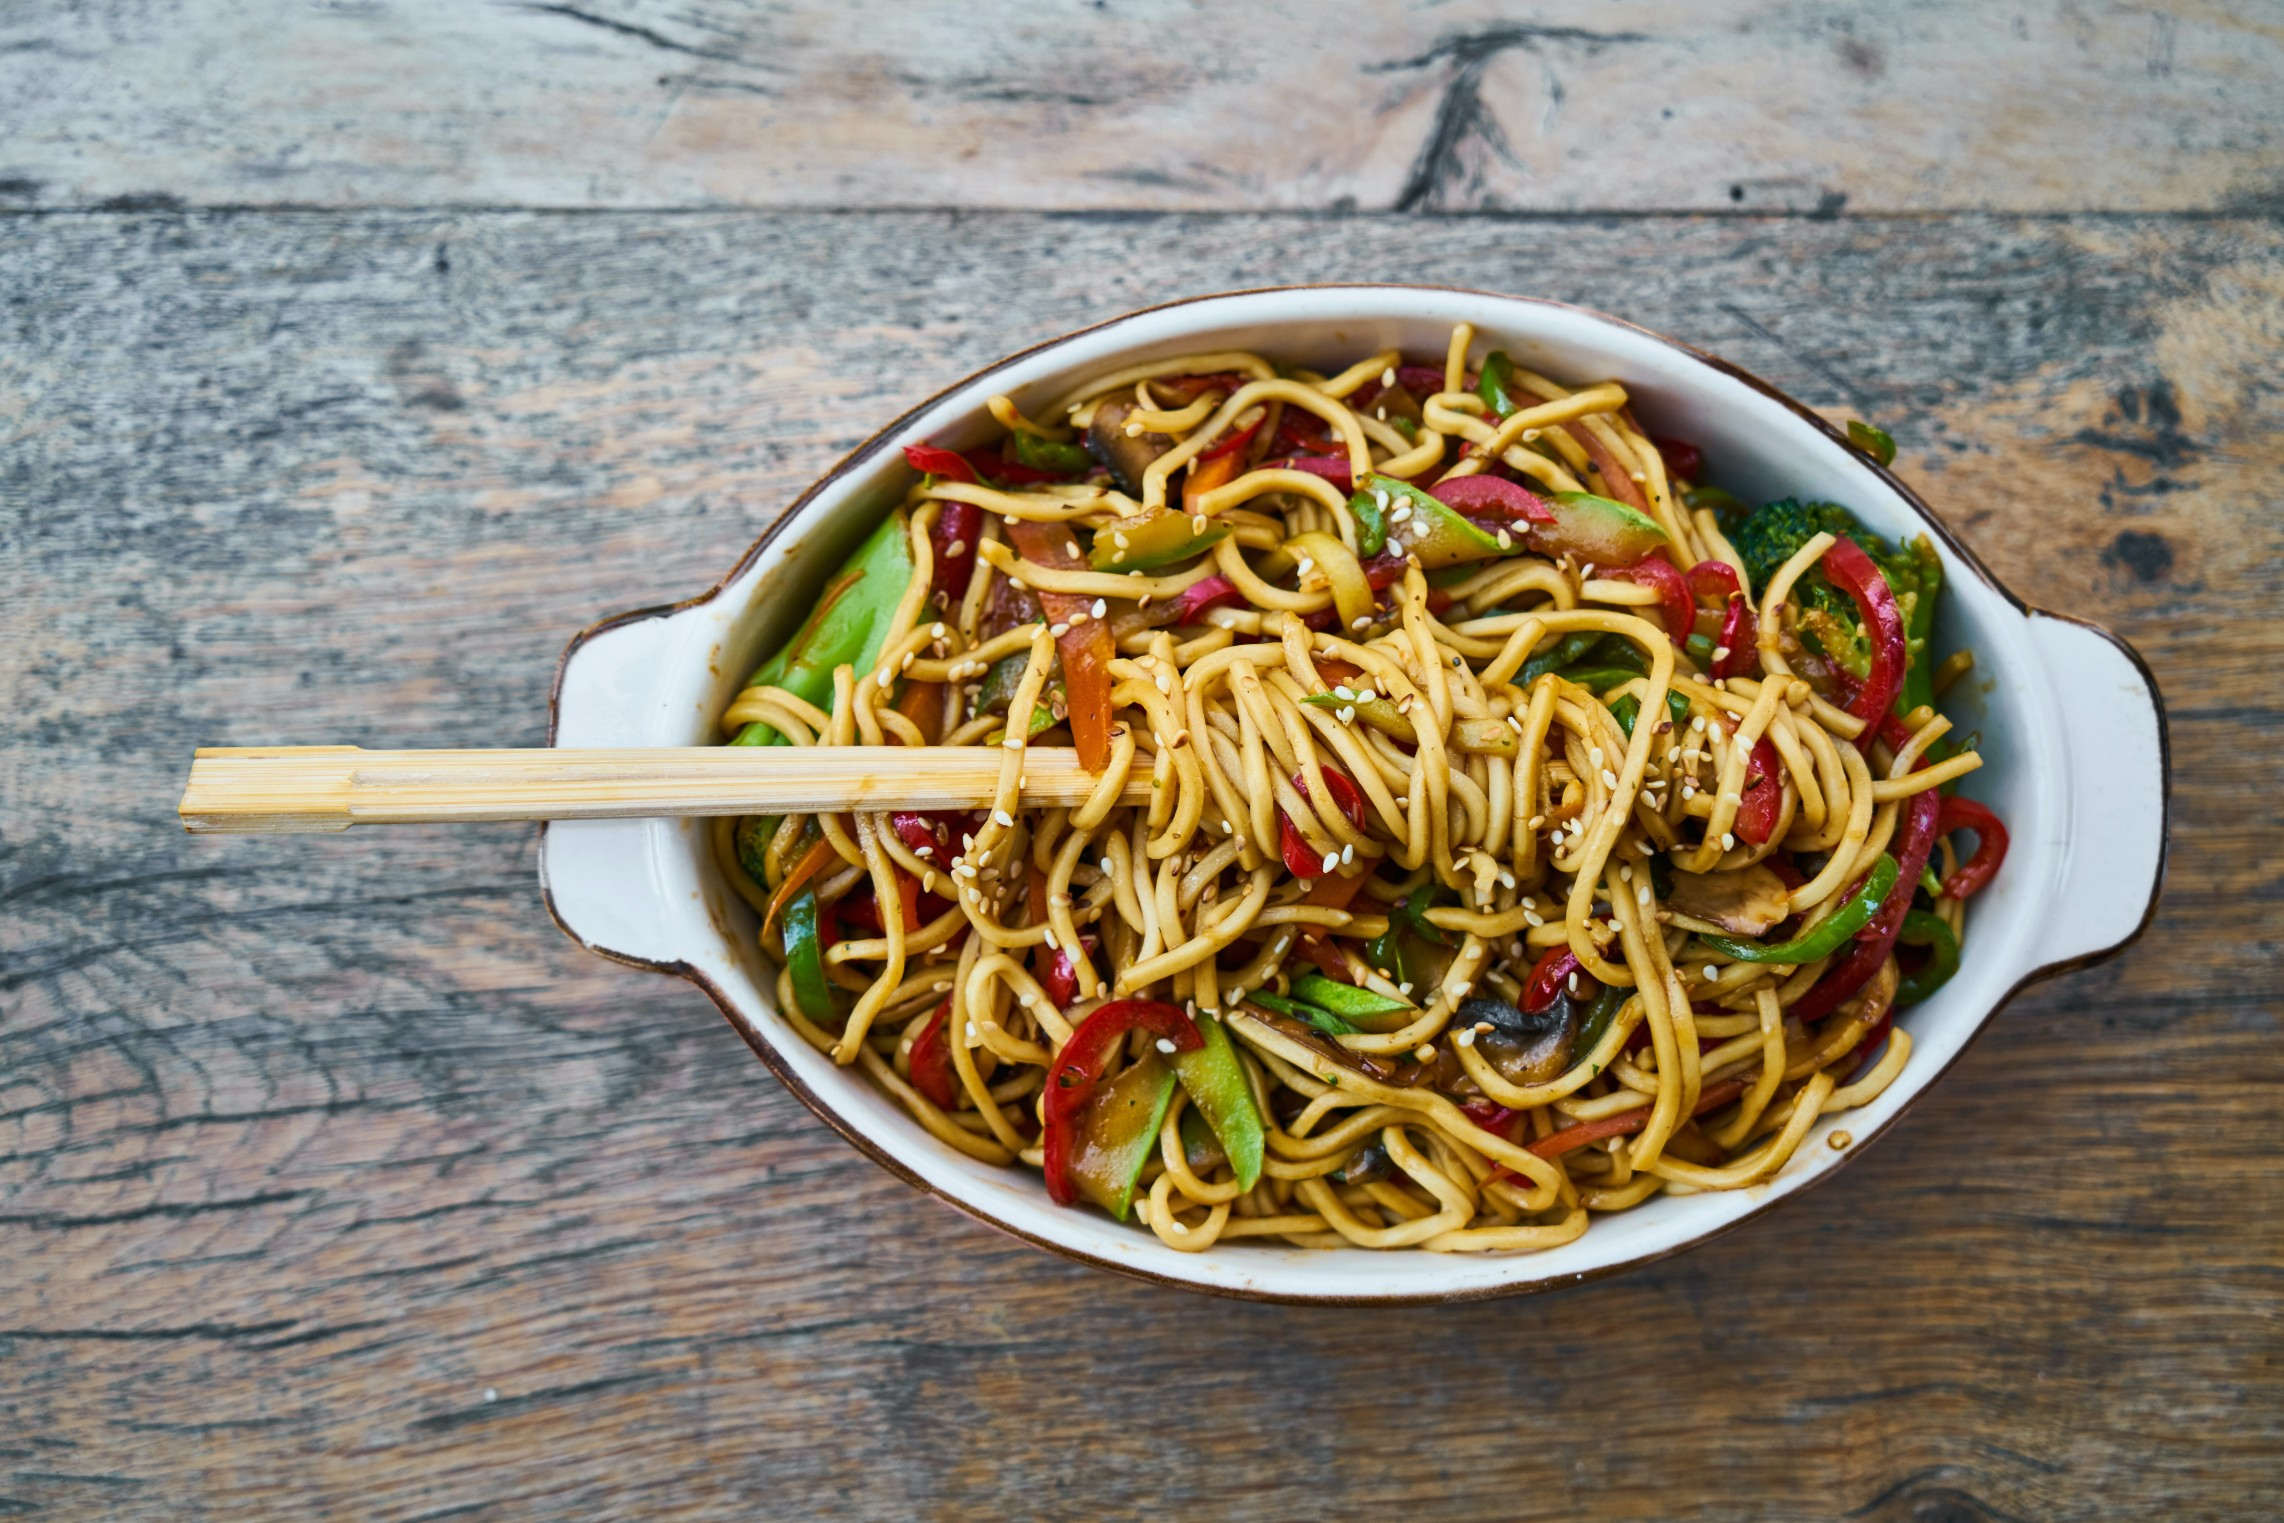 Stir Fried Noodles in a plate with a big wood spoon